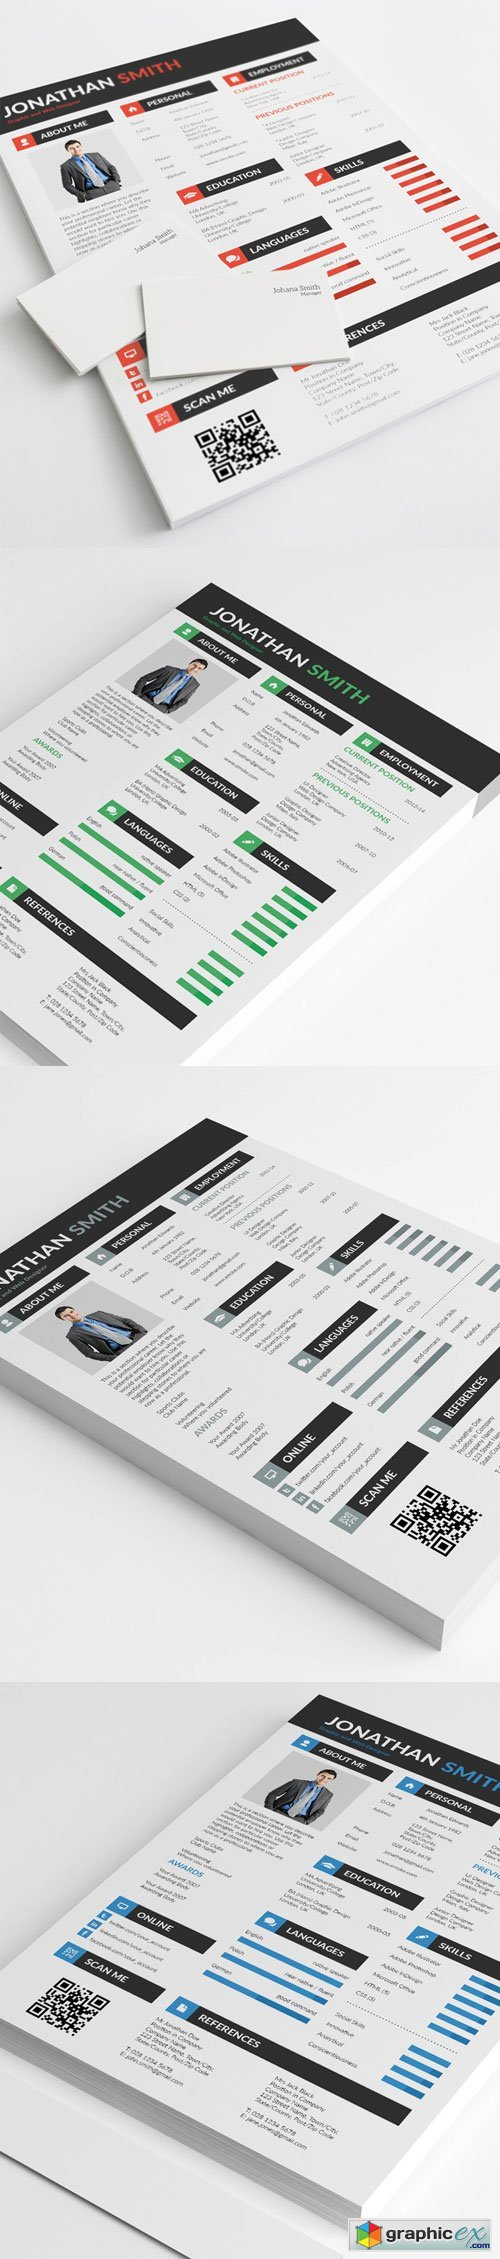 All in One PSD Resume Template